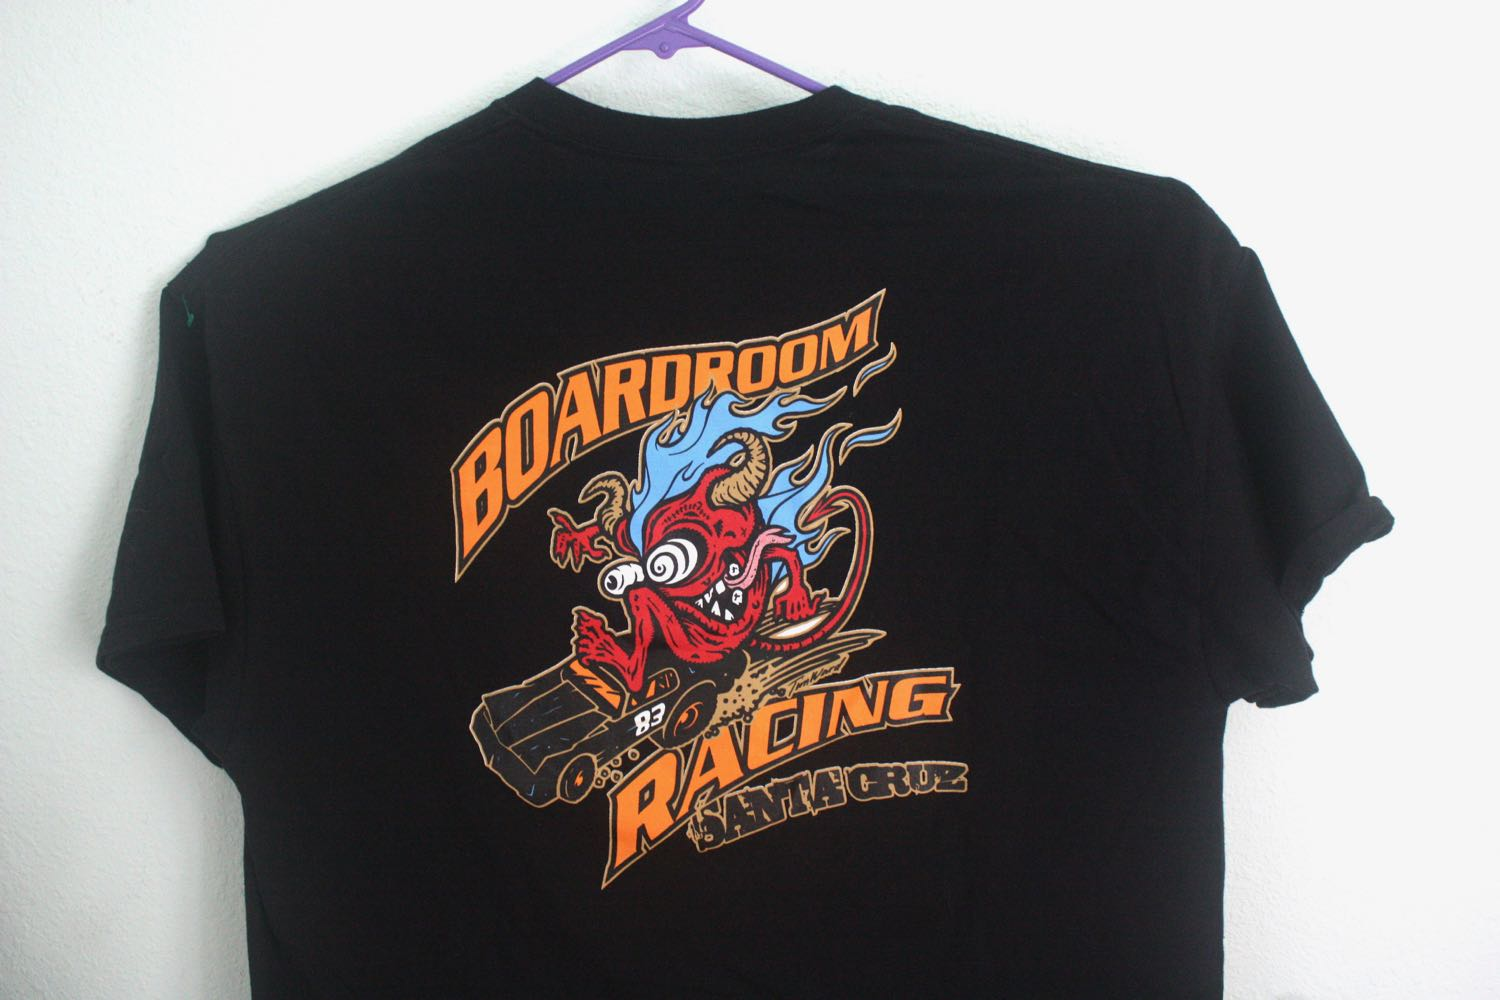 Santa Cruz Boardroom Racing Tee Color Design